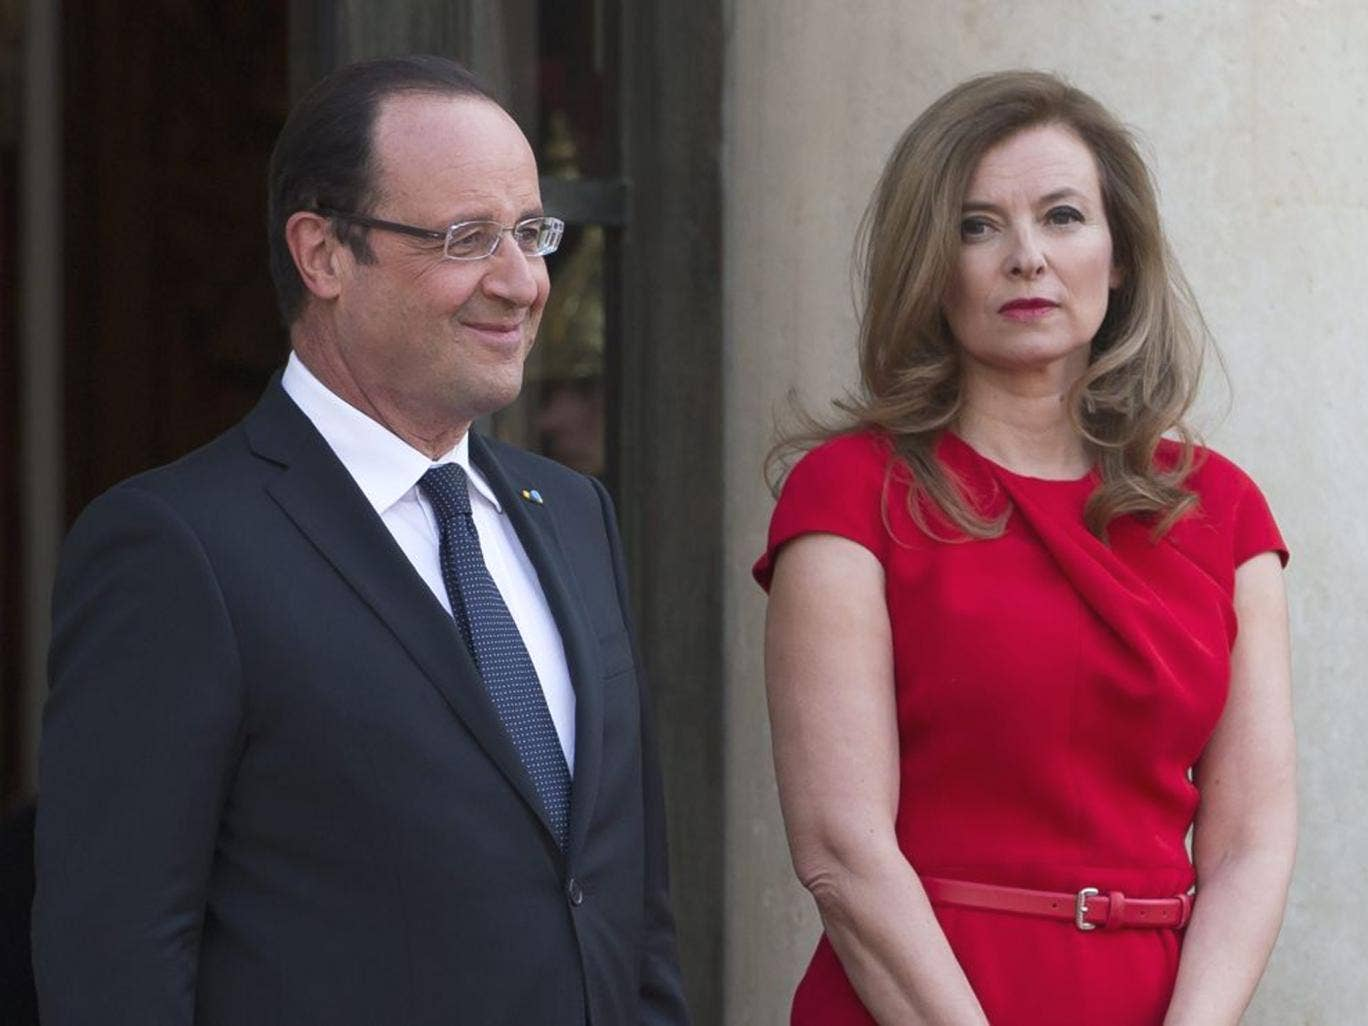 Valérie Trierweiler left hospital in Paris yesterday, a week after reports emerged that her partner, President François Hollande, was having an affair with the actress Julie Gayet